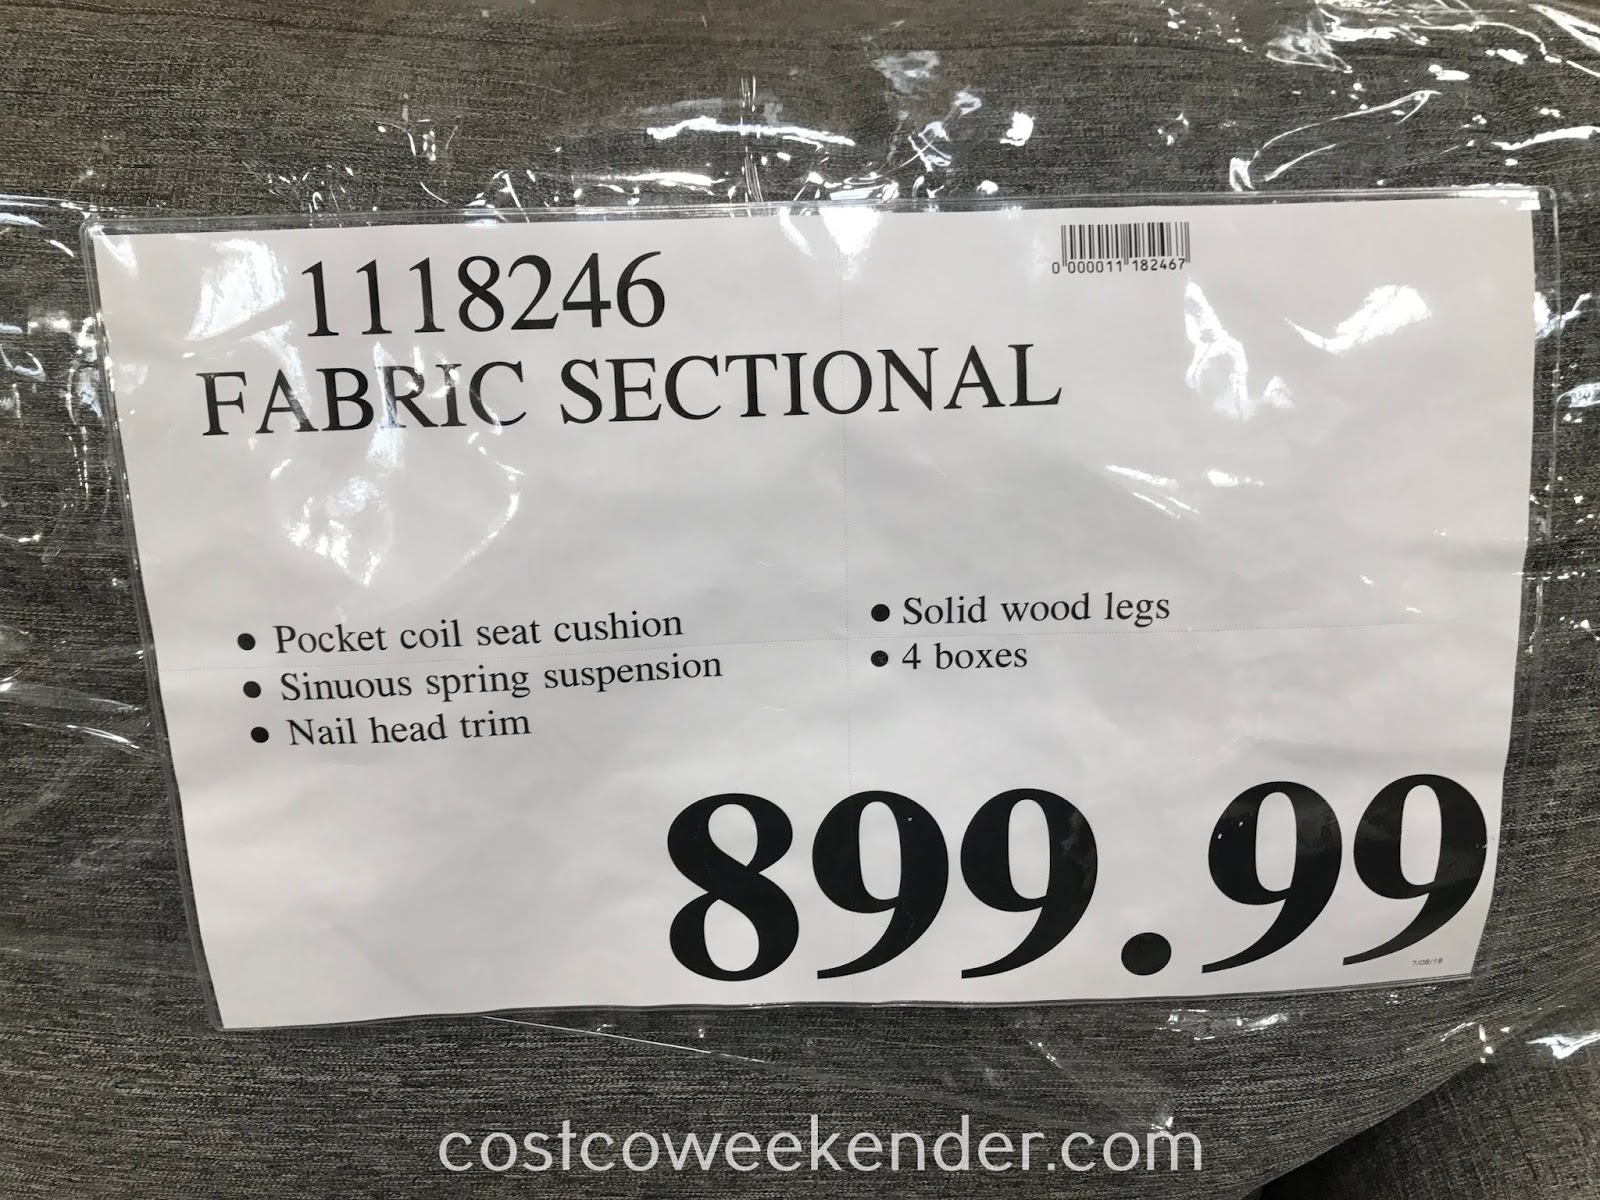 Deal for the Fabric Sectional at Costco